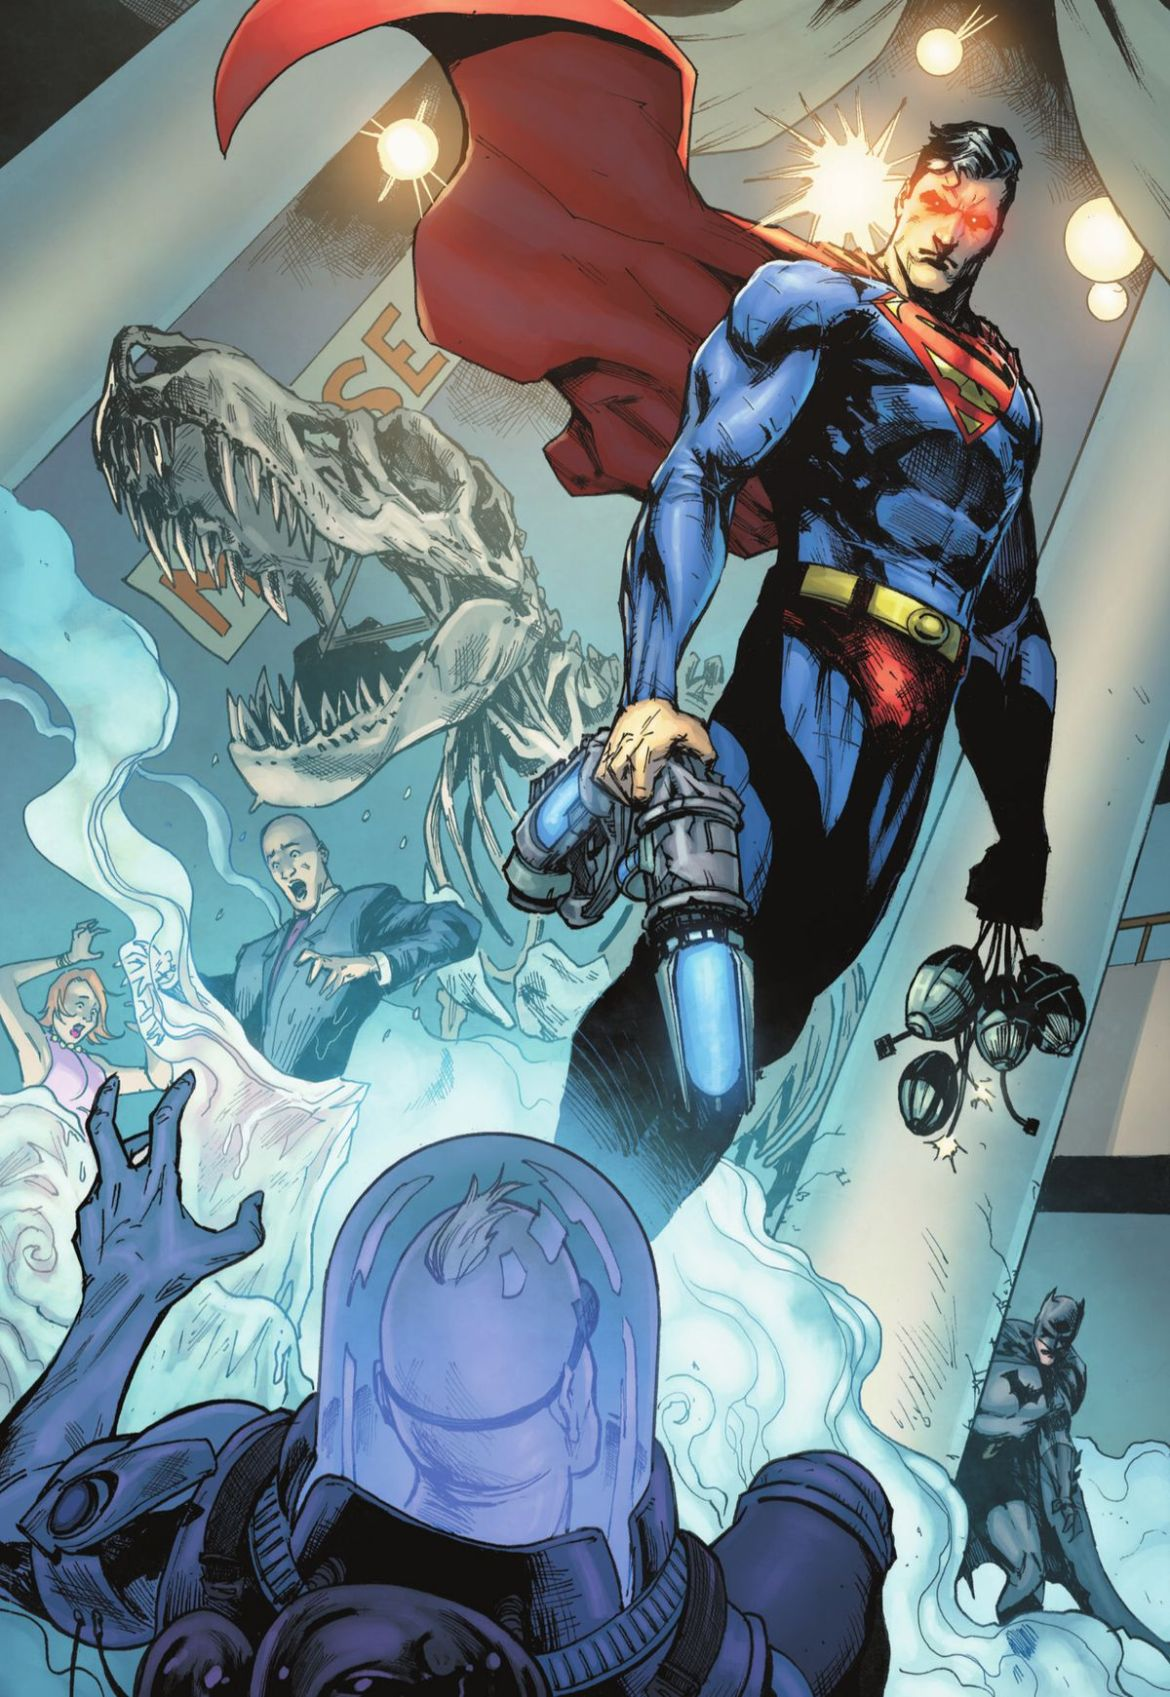 Superman, crushing Mr. Freeze's ice cannon in one hand, hovers above the supervillain with cape billowing in Justice League: Last Ride #1, DC Comics (2021).